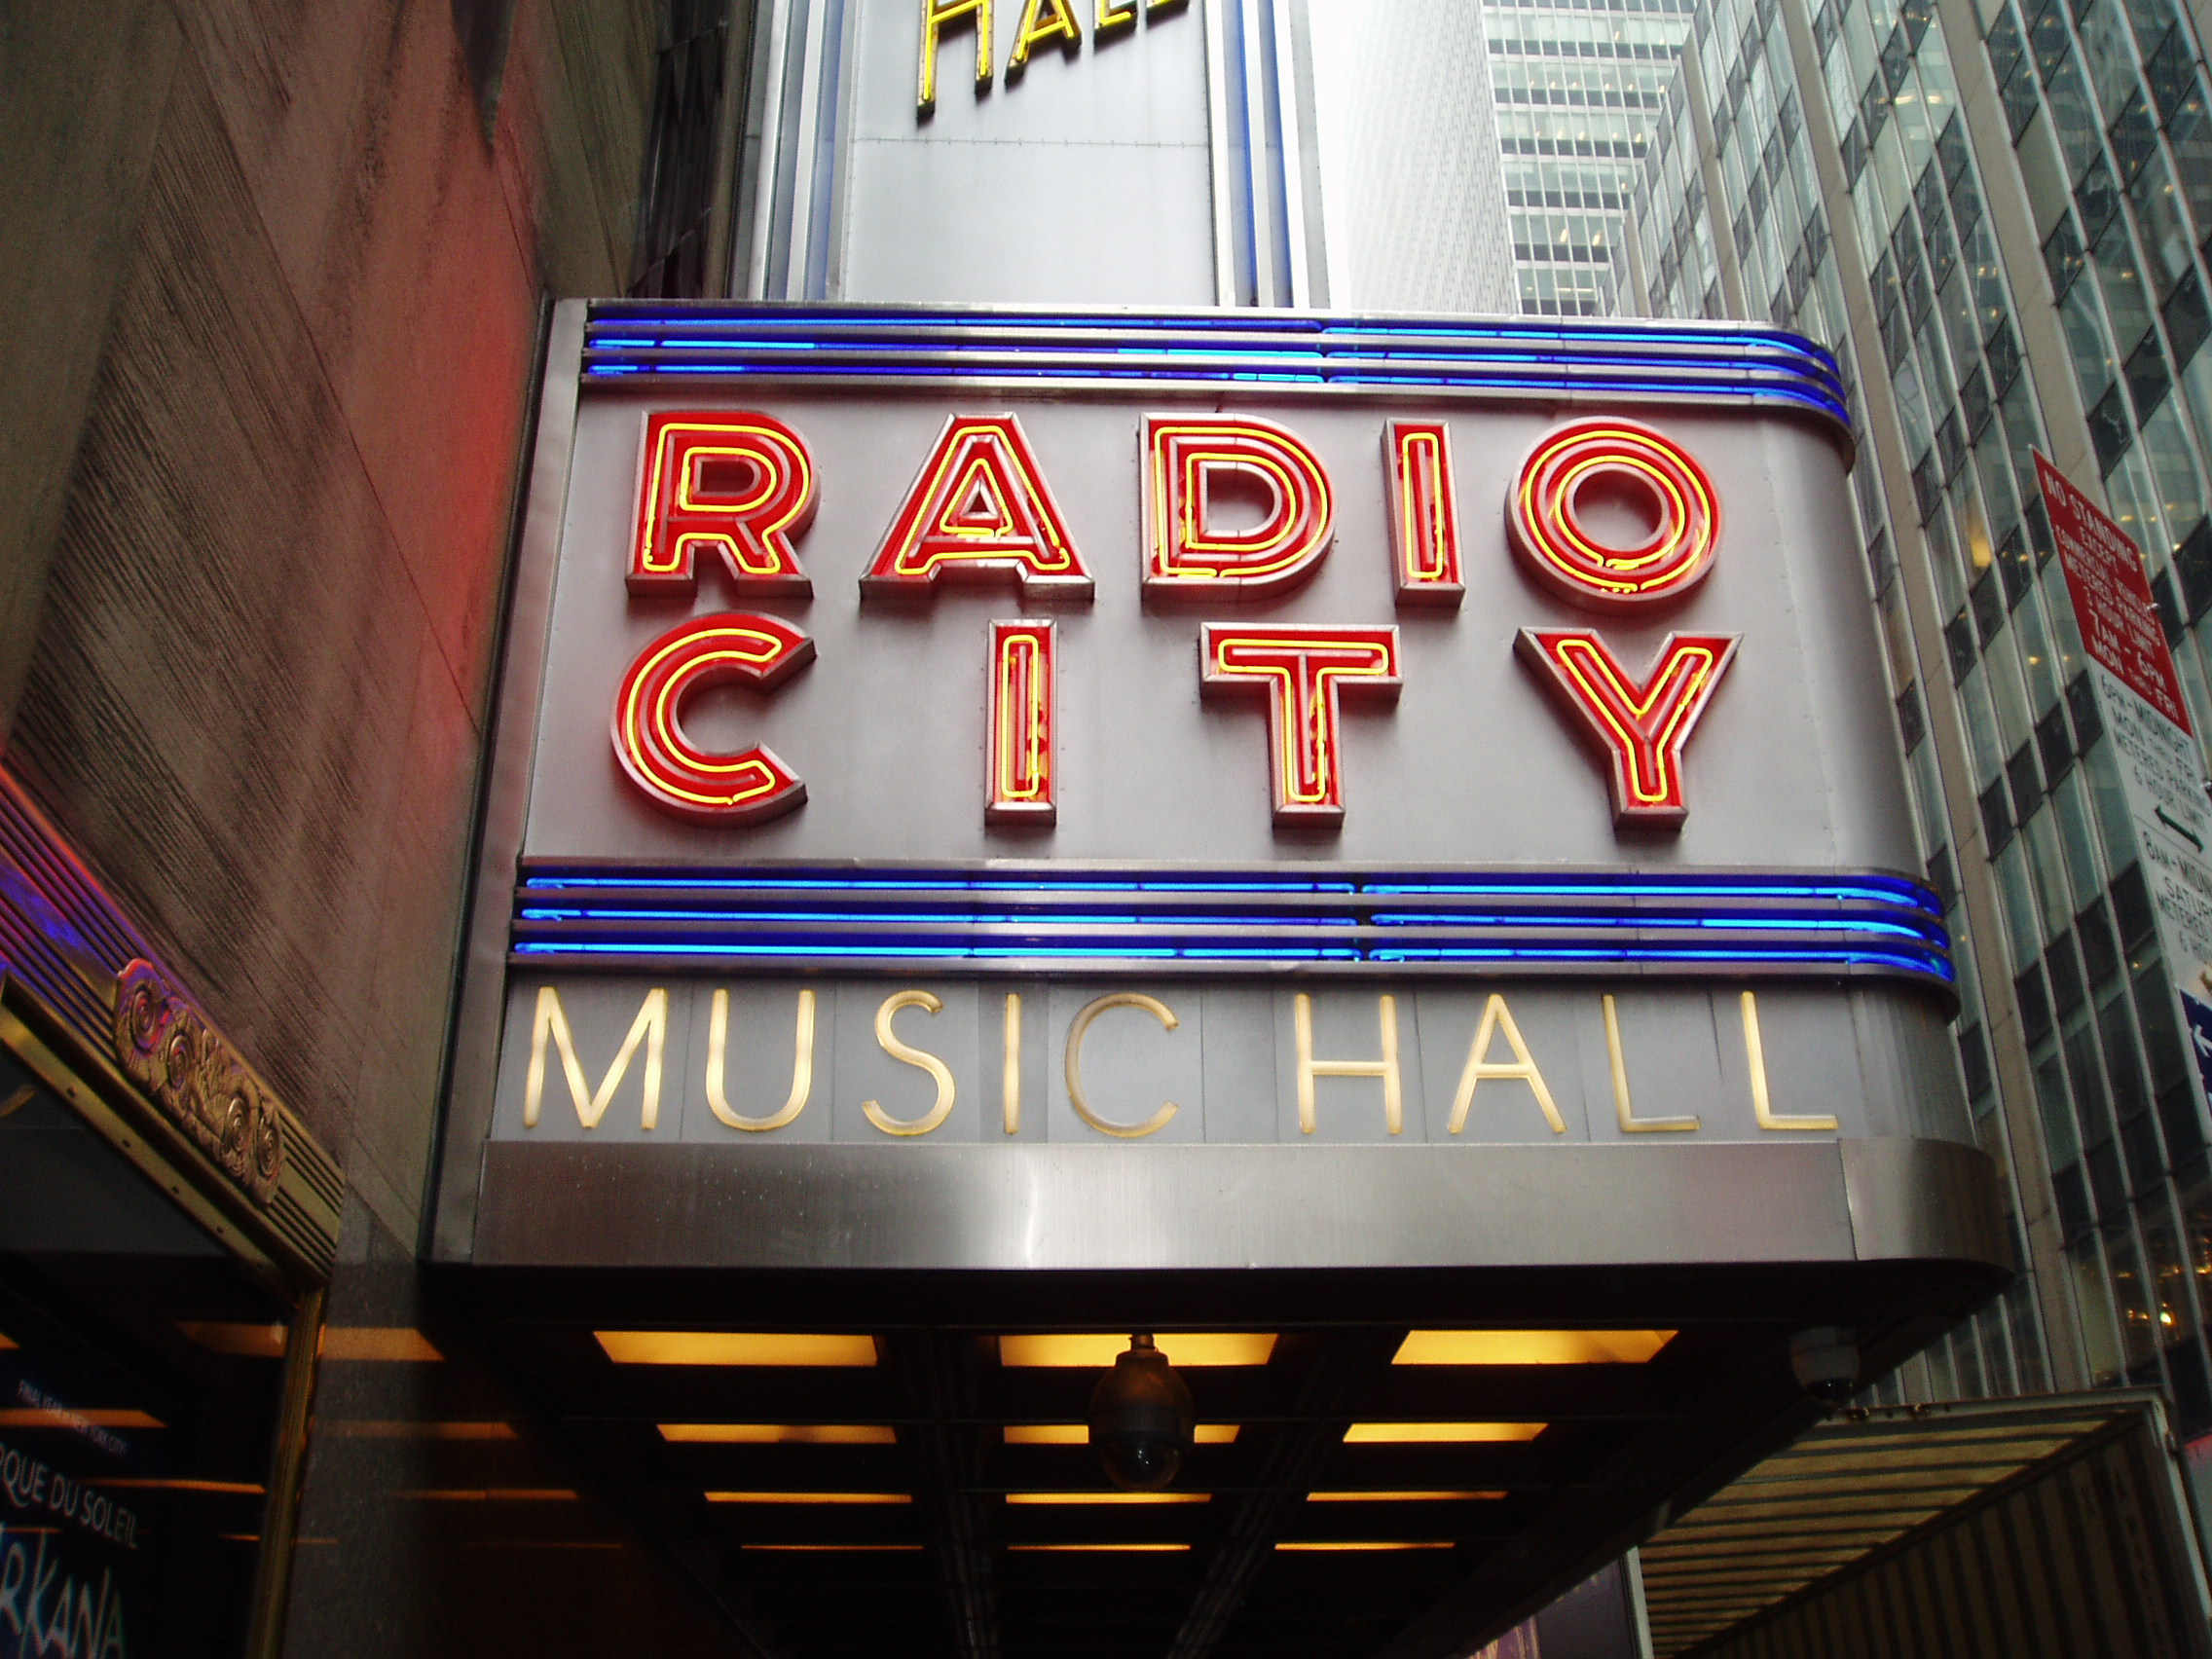 Radio City Music Hall will have six (6) alternative format performances for the run of the Christmas Spectacular at Radio City Music Hall. These performances consist of sign language interpreted and open-captioned performances for the deaf and hard of hearing, as well as audio description performances for the blind and visually impaired.*.